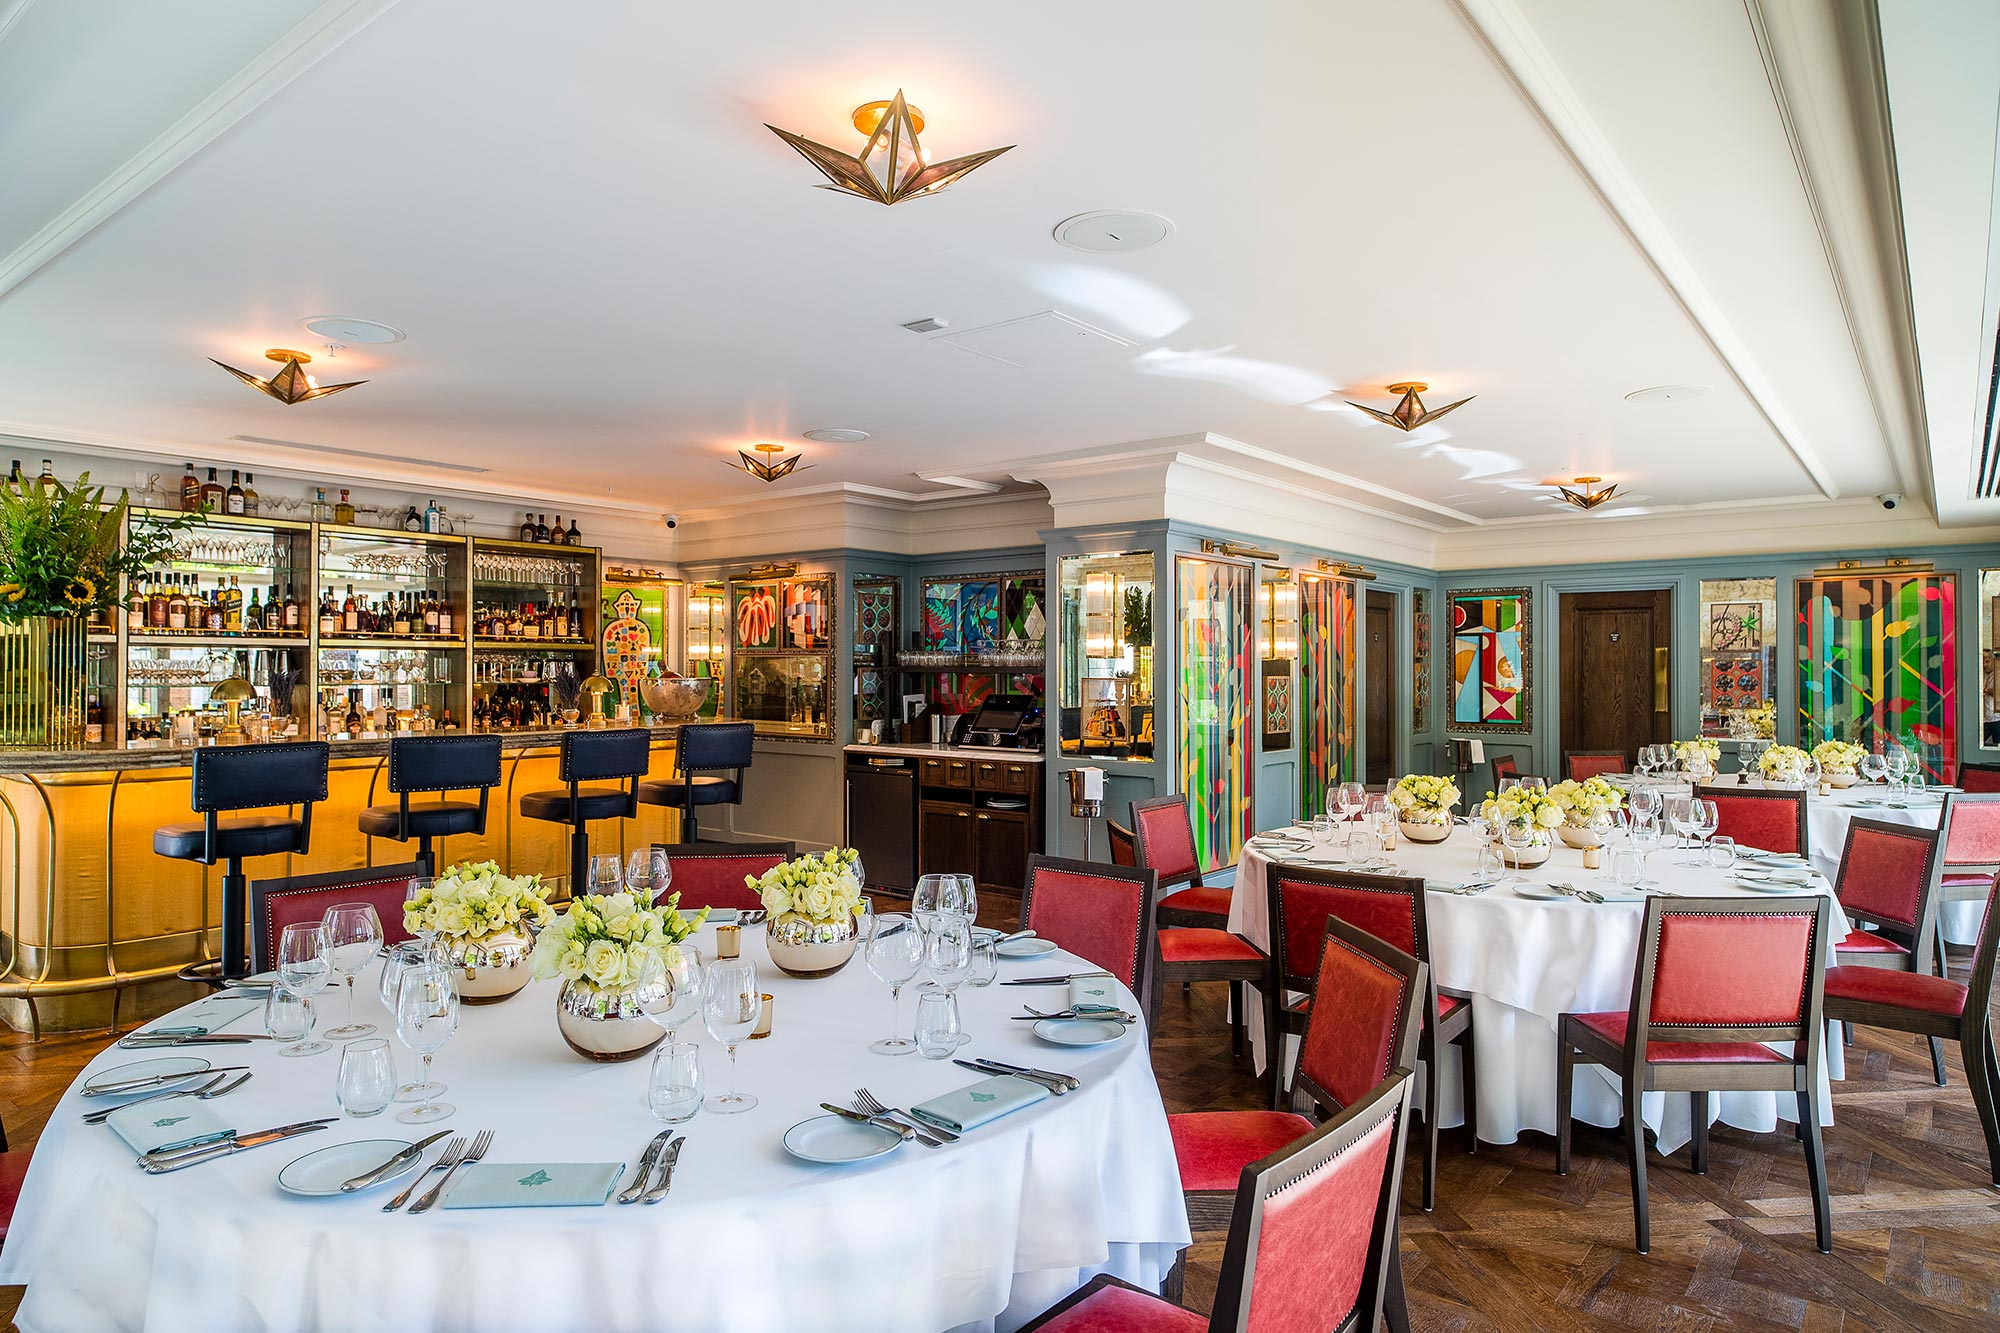 Private Dining Room in London - The Ivy City Garden - The Ivy City Garden